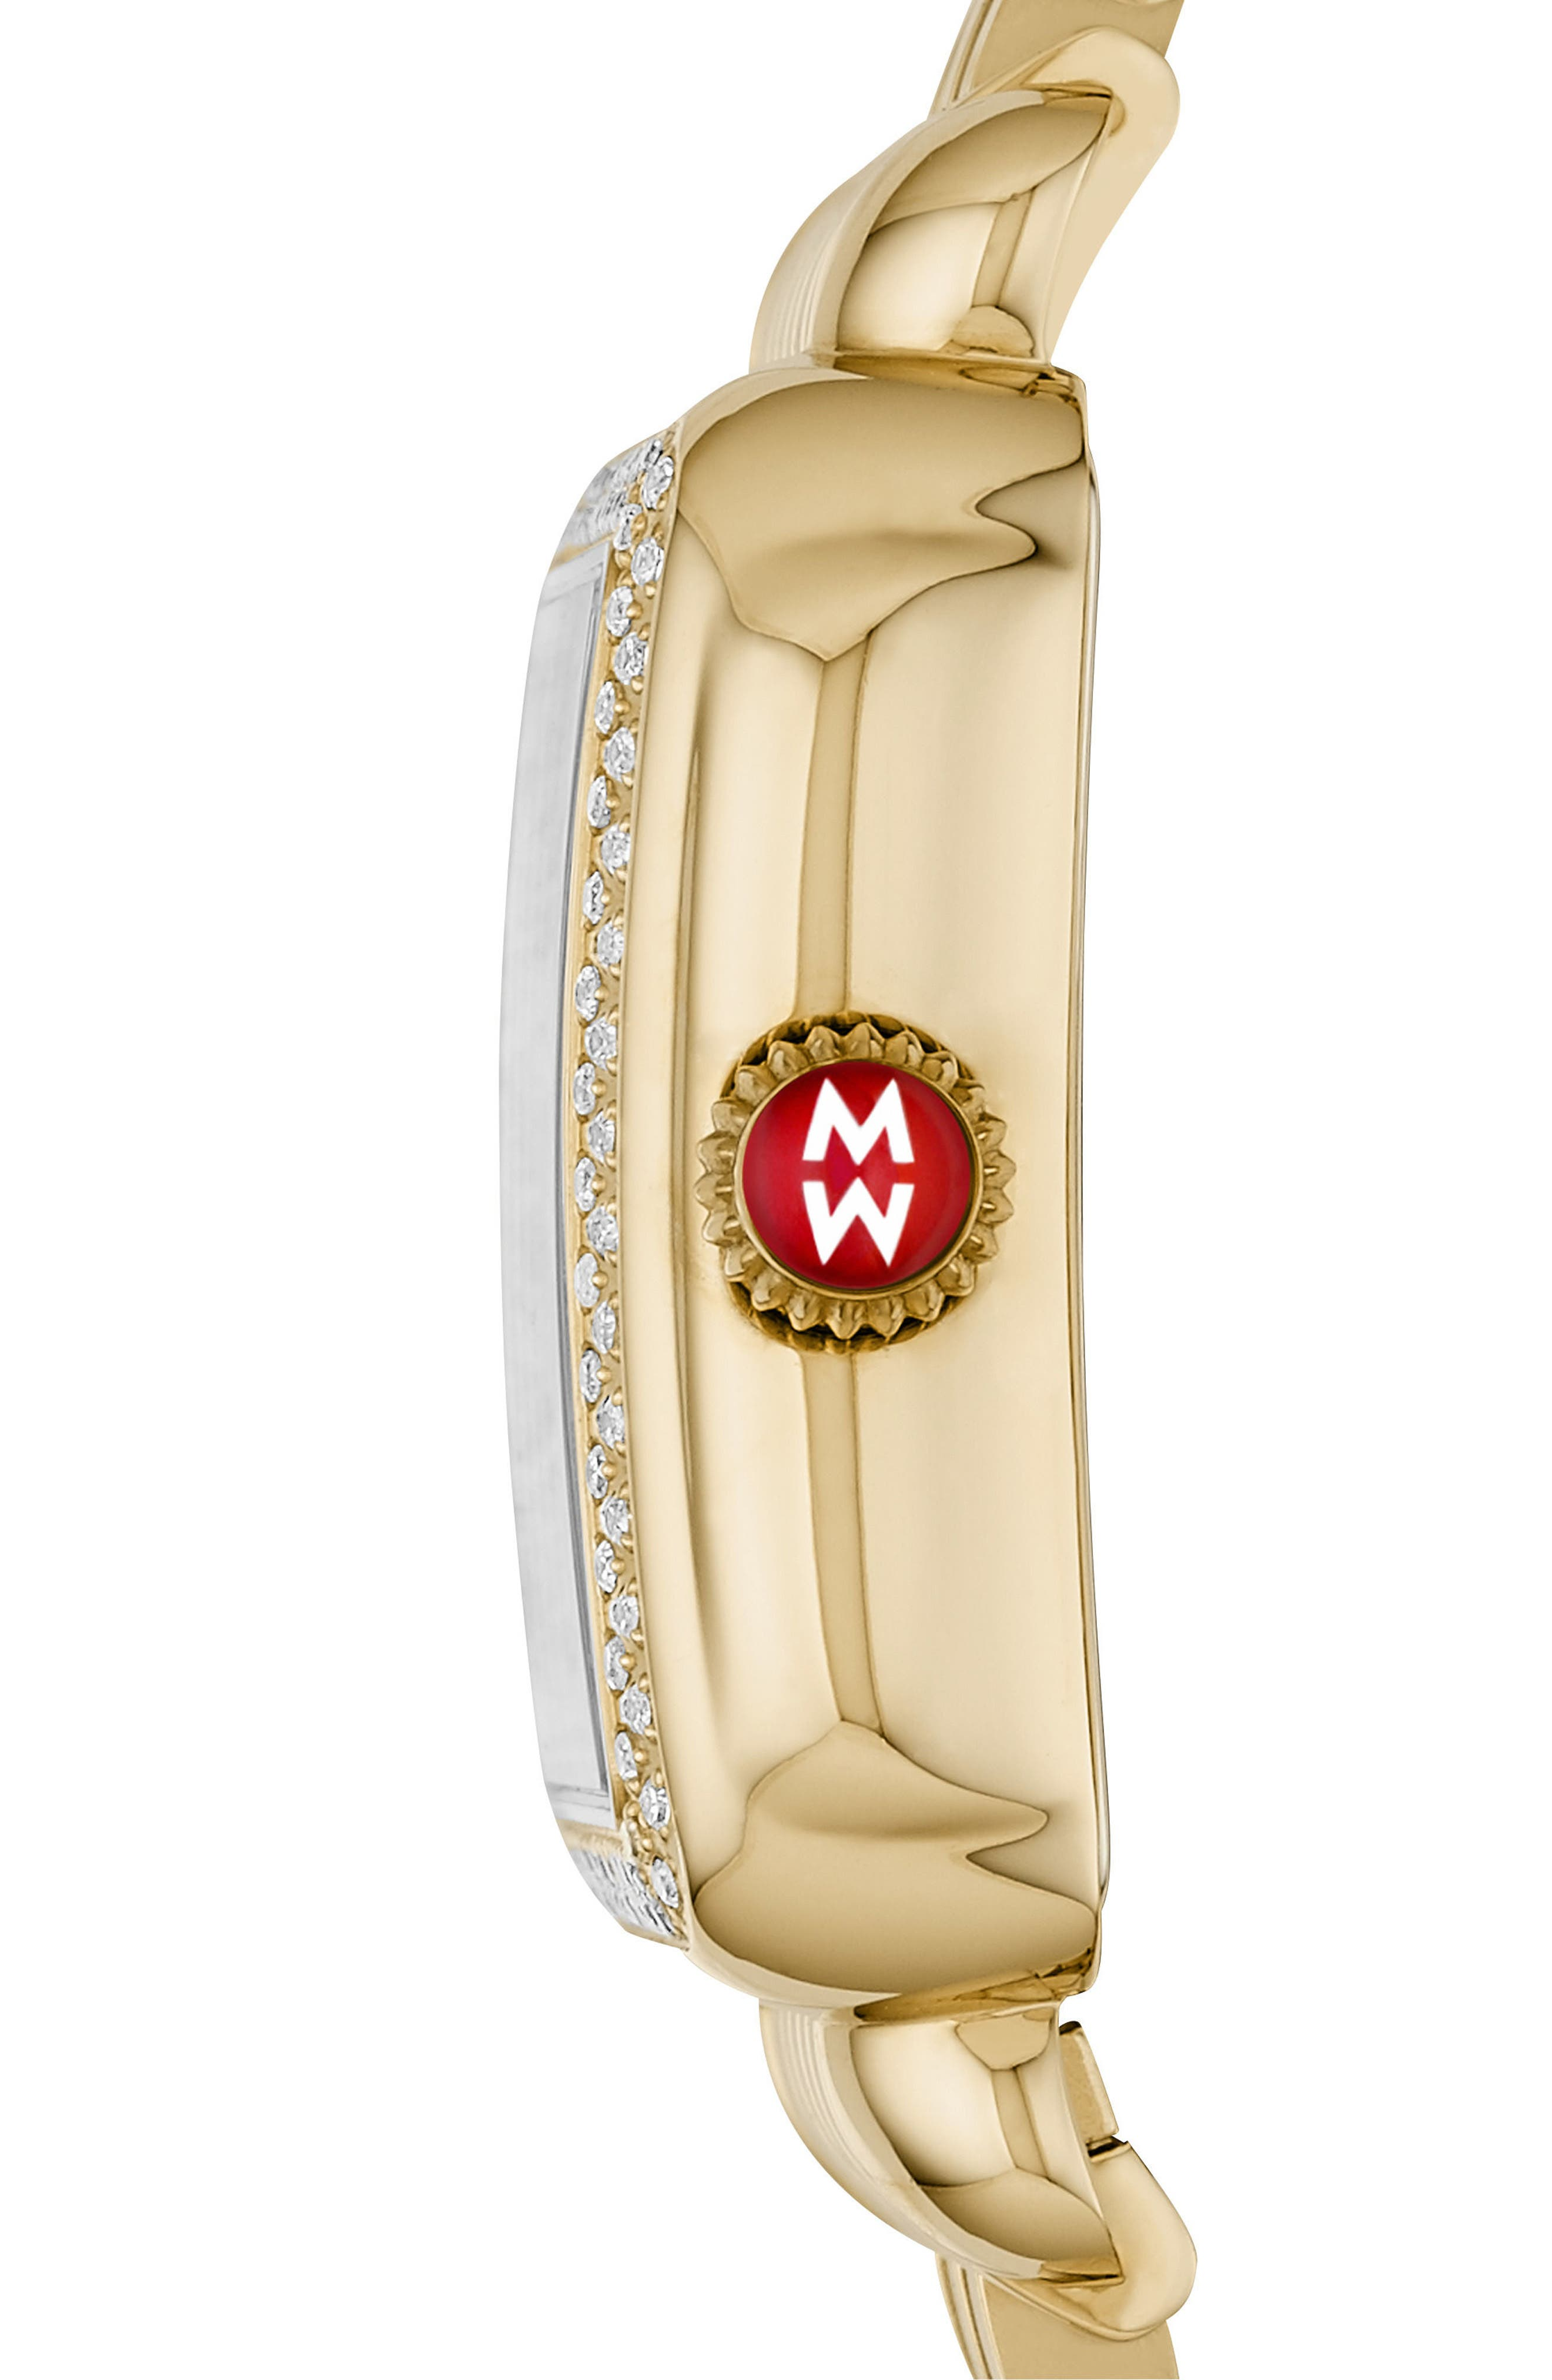 MICHELE, Deco Madison Diamond Dial Watch Case, 33mm x 35mm, Alternate thumbnail 3, color, GOLD